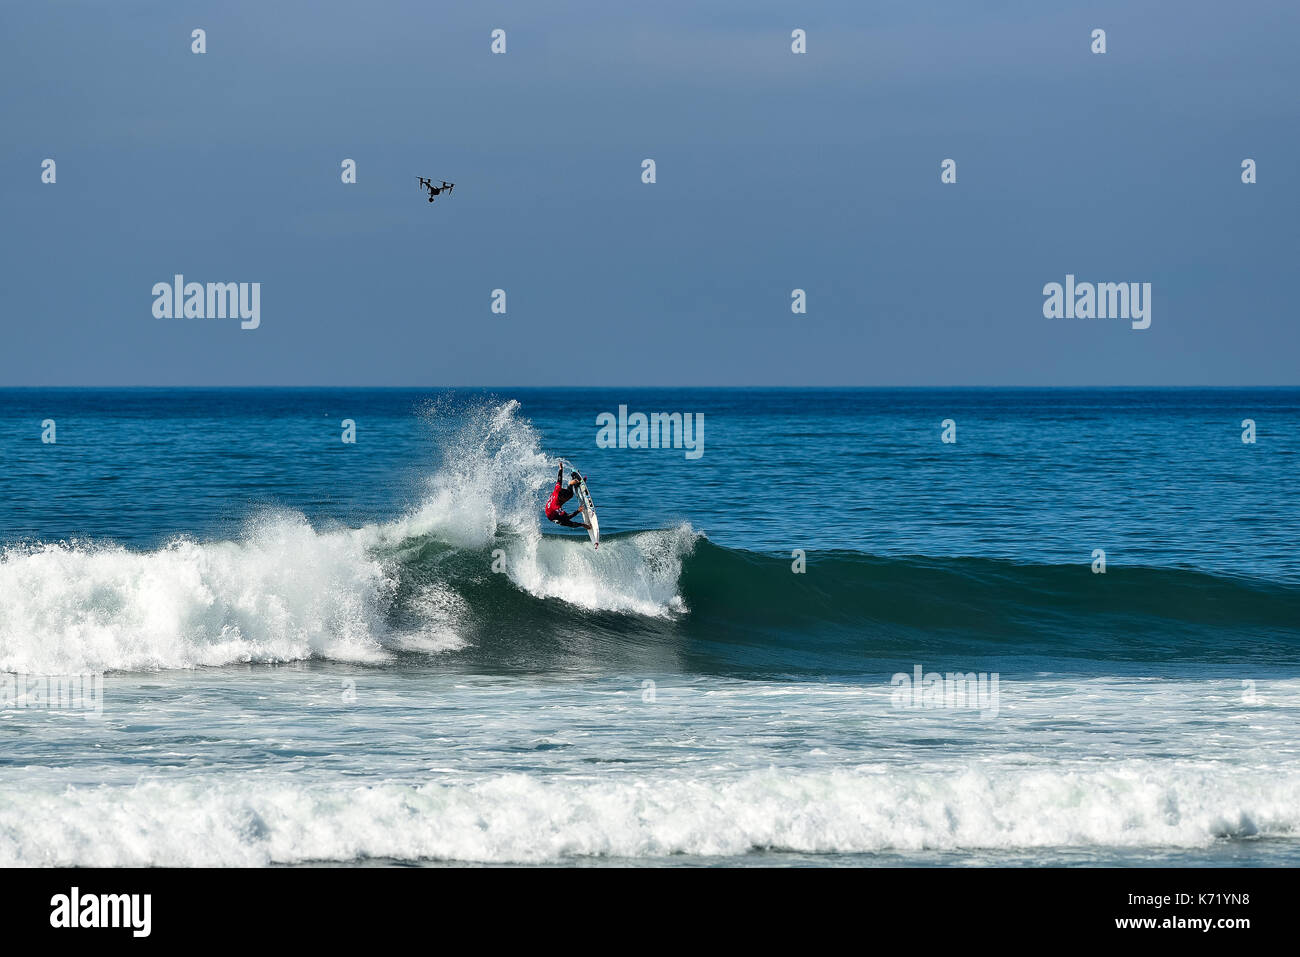 San Clemente, USA. 13 September, 2017.  Surfers compete head to head during the 2017 Hurley Pro surf contest at Lower Trestles, San Onofre State Park, CA. Surfer: Gabriel Medina (BRA). Credit: Benjamin Ginsberg/Alamy Live News. - Stock Image